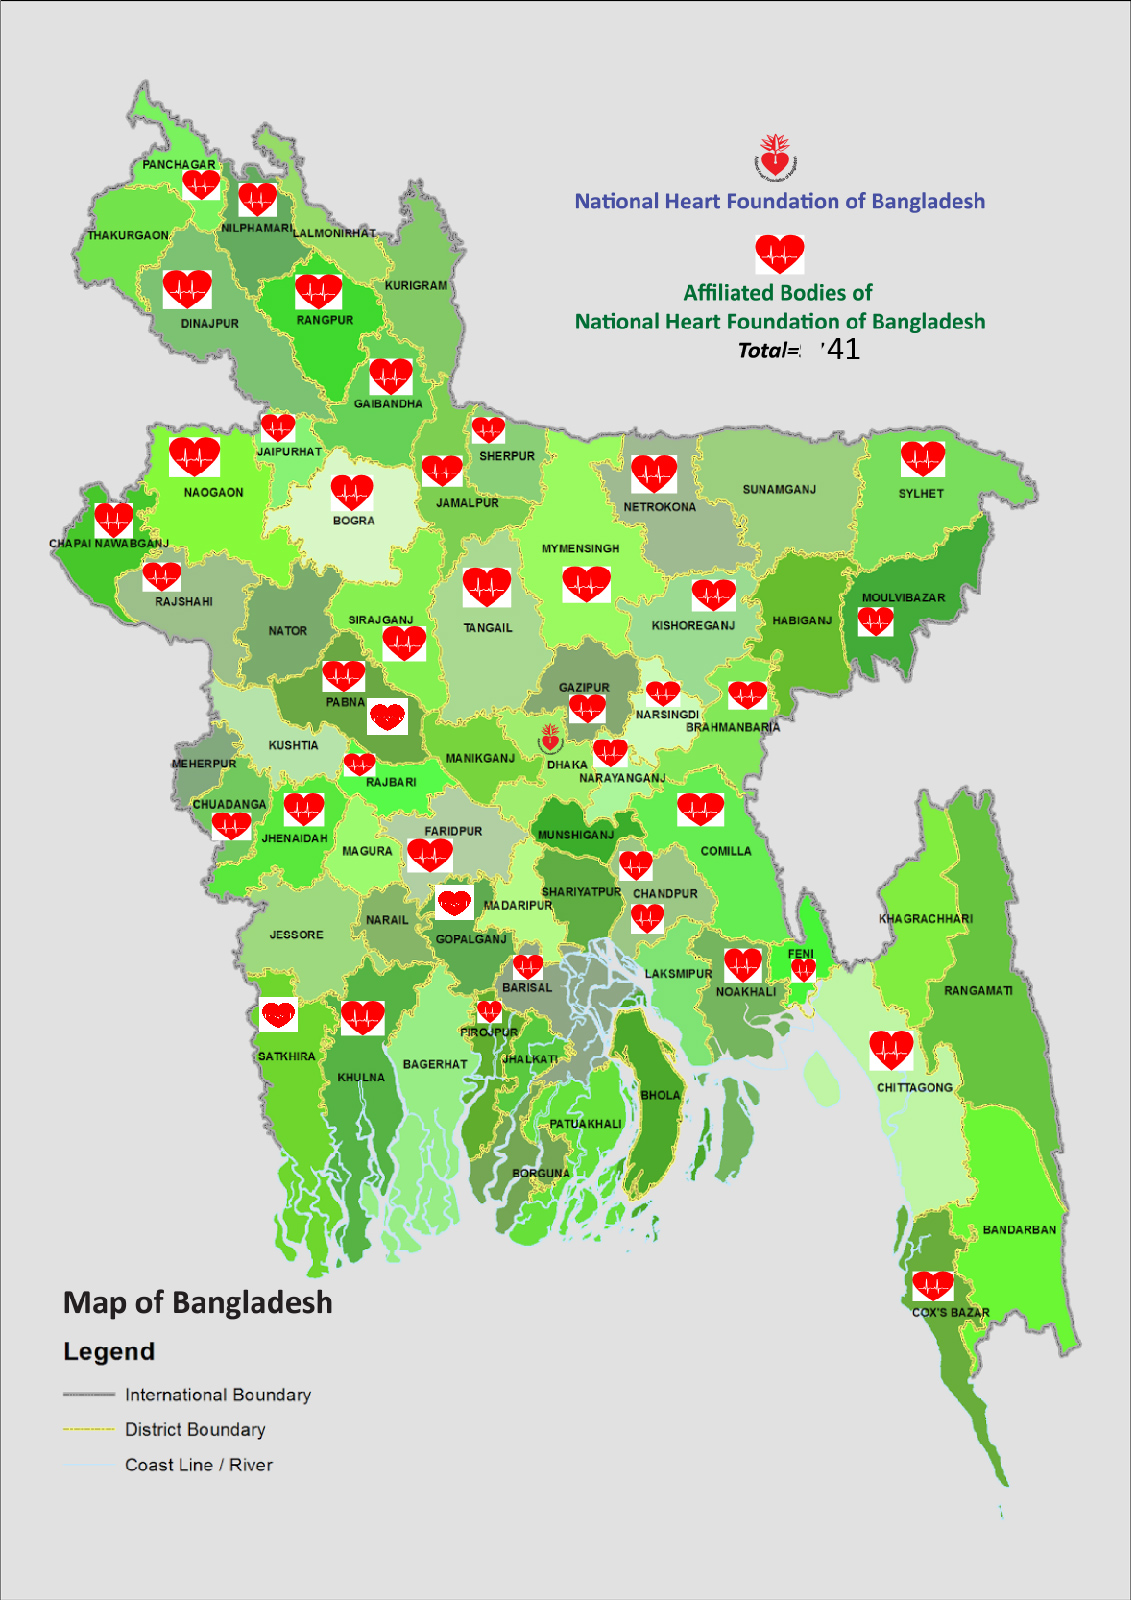 Affiliated Bodies District Map in Bangladesh